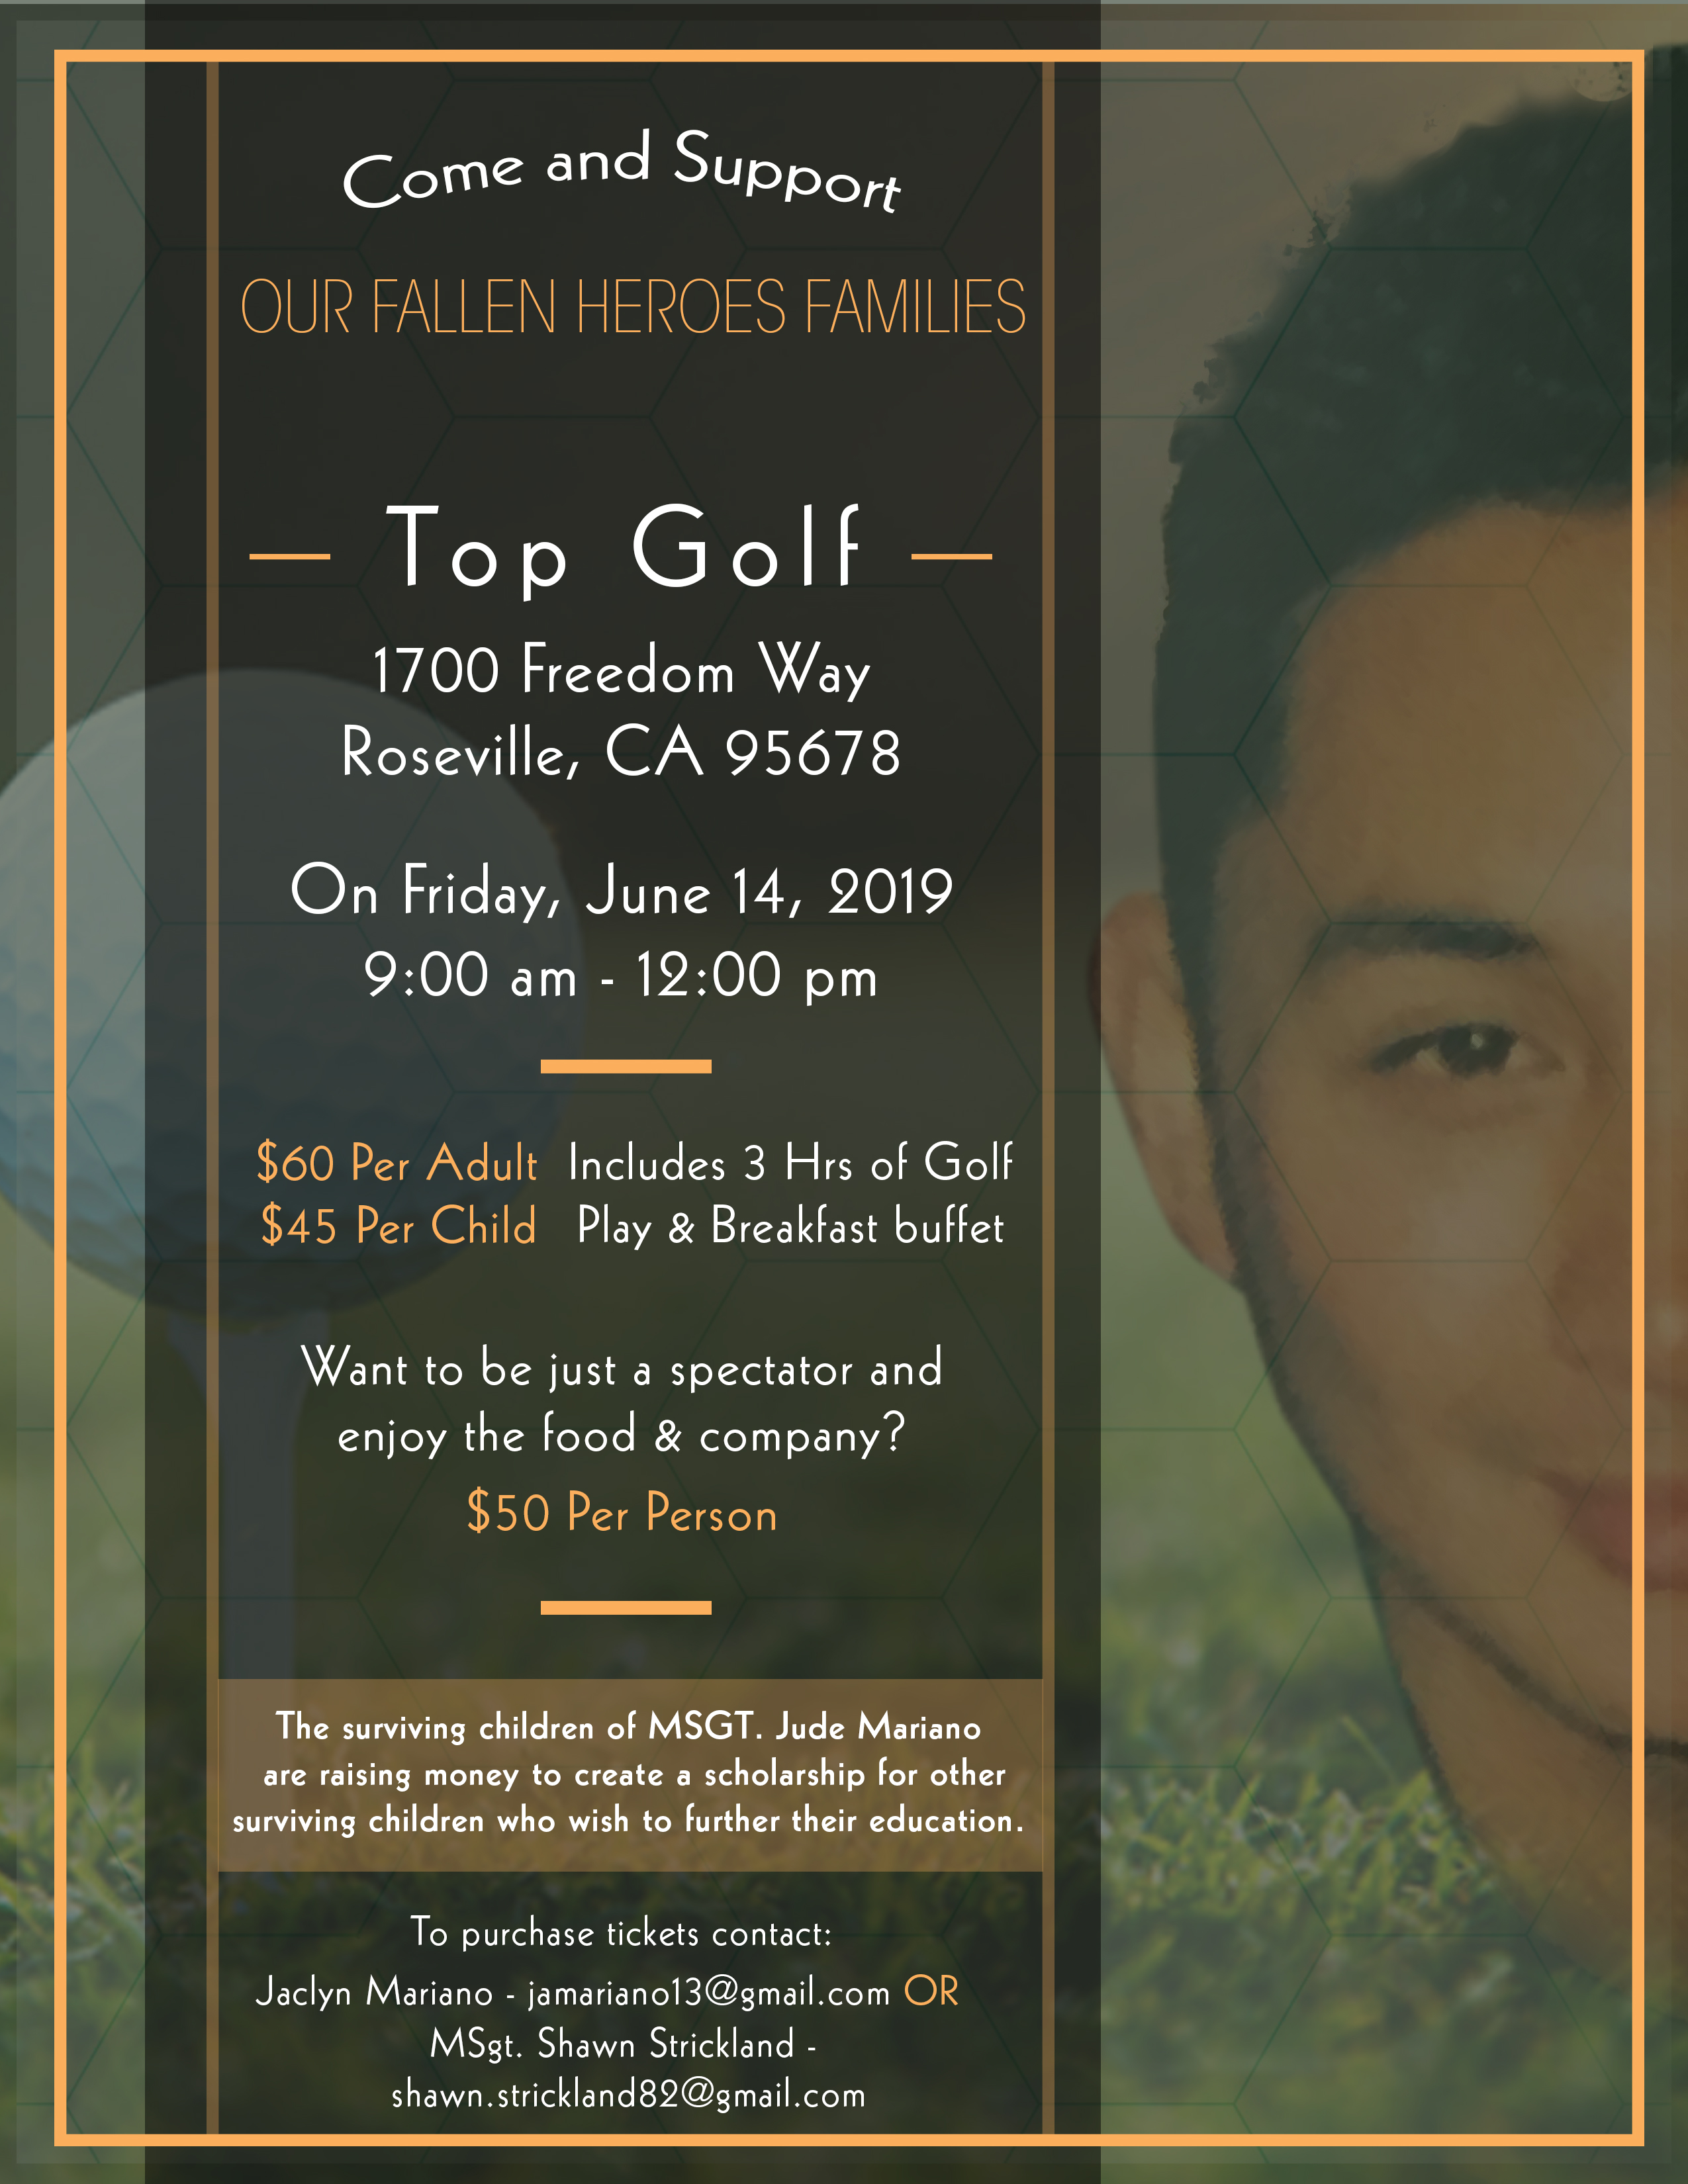 come-and-support-our-fallen-heroes-families